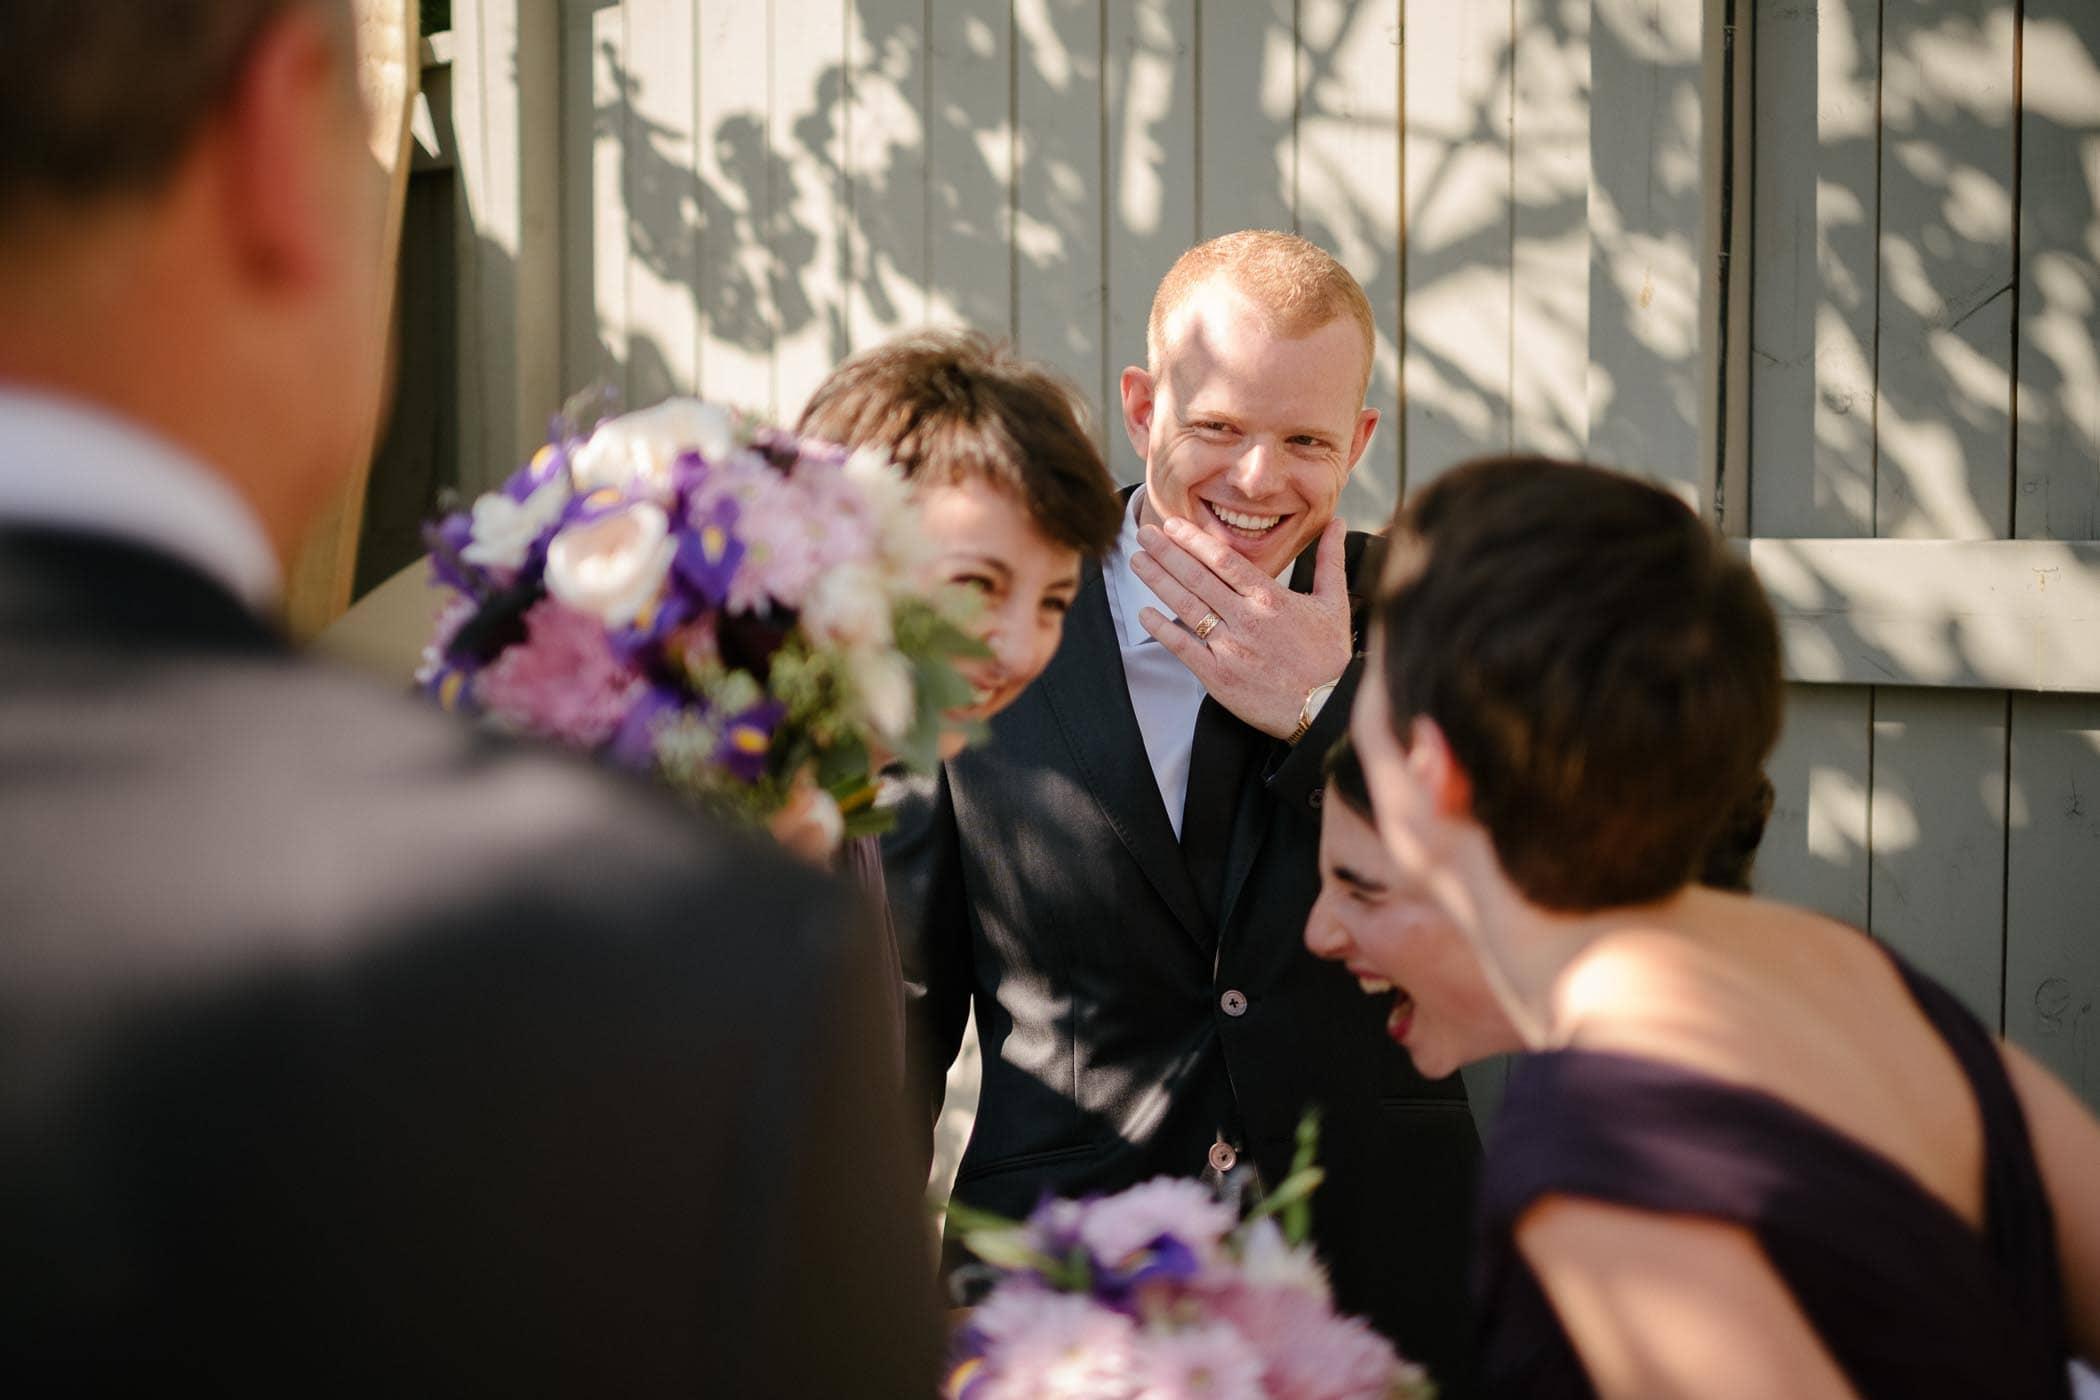 The bride and groom and bridal party laughing at a joke after wedding ceremony at glenerin inn and spa in mississauga.